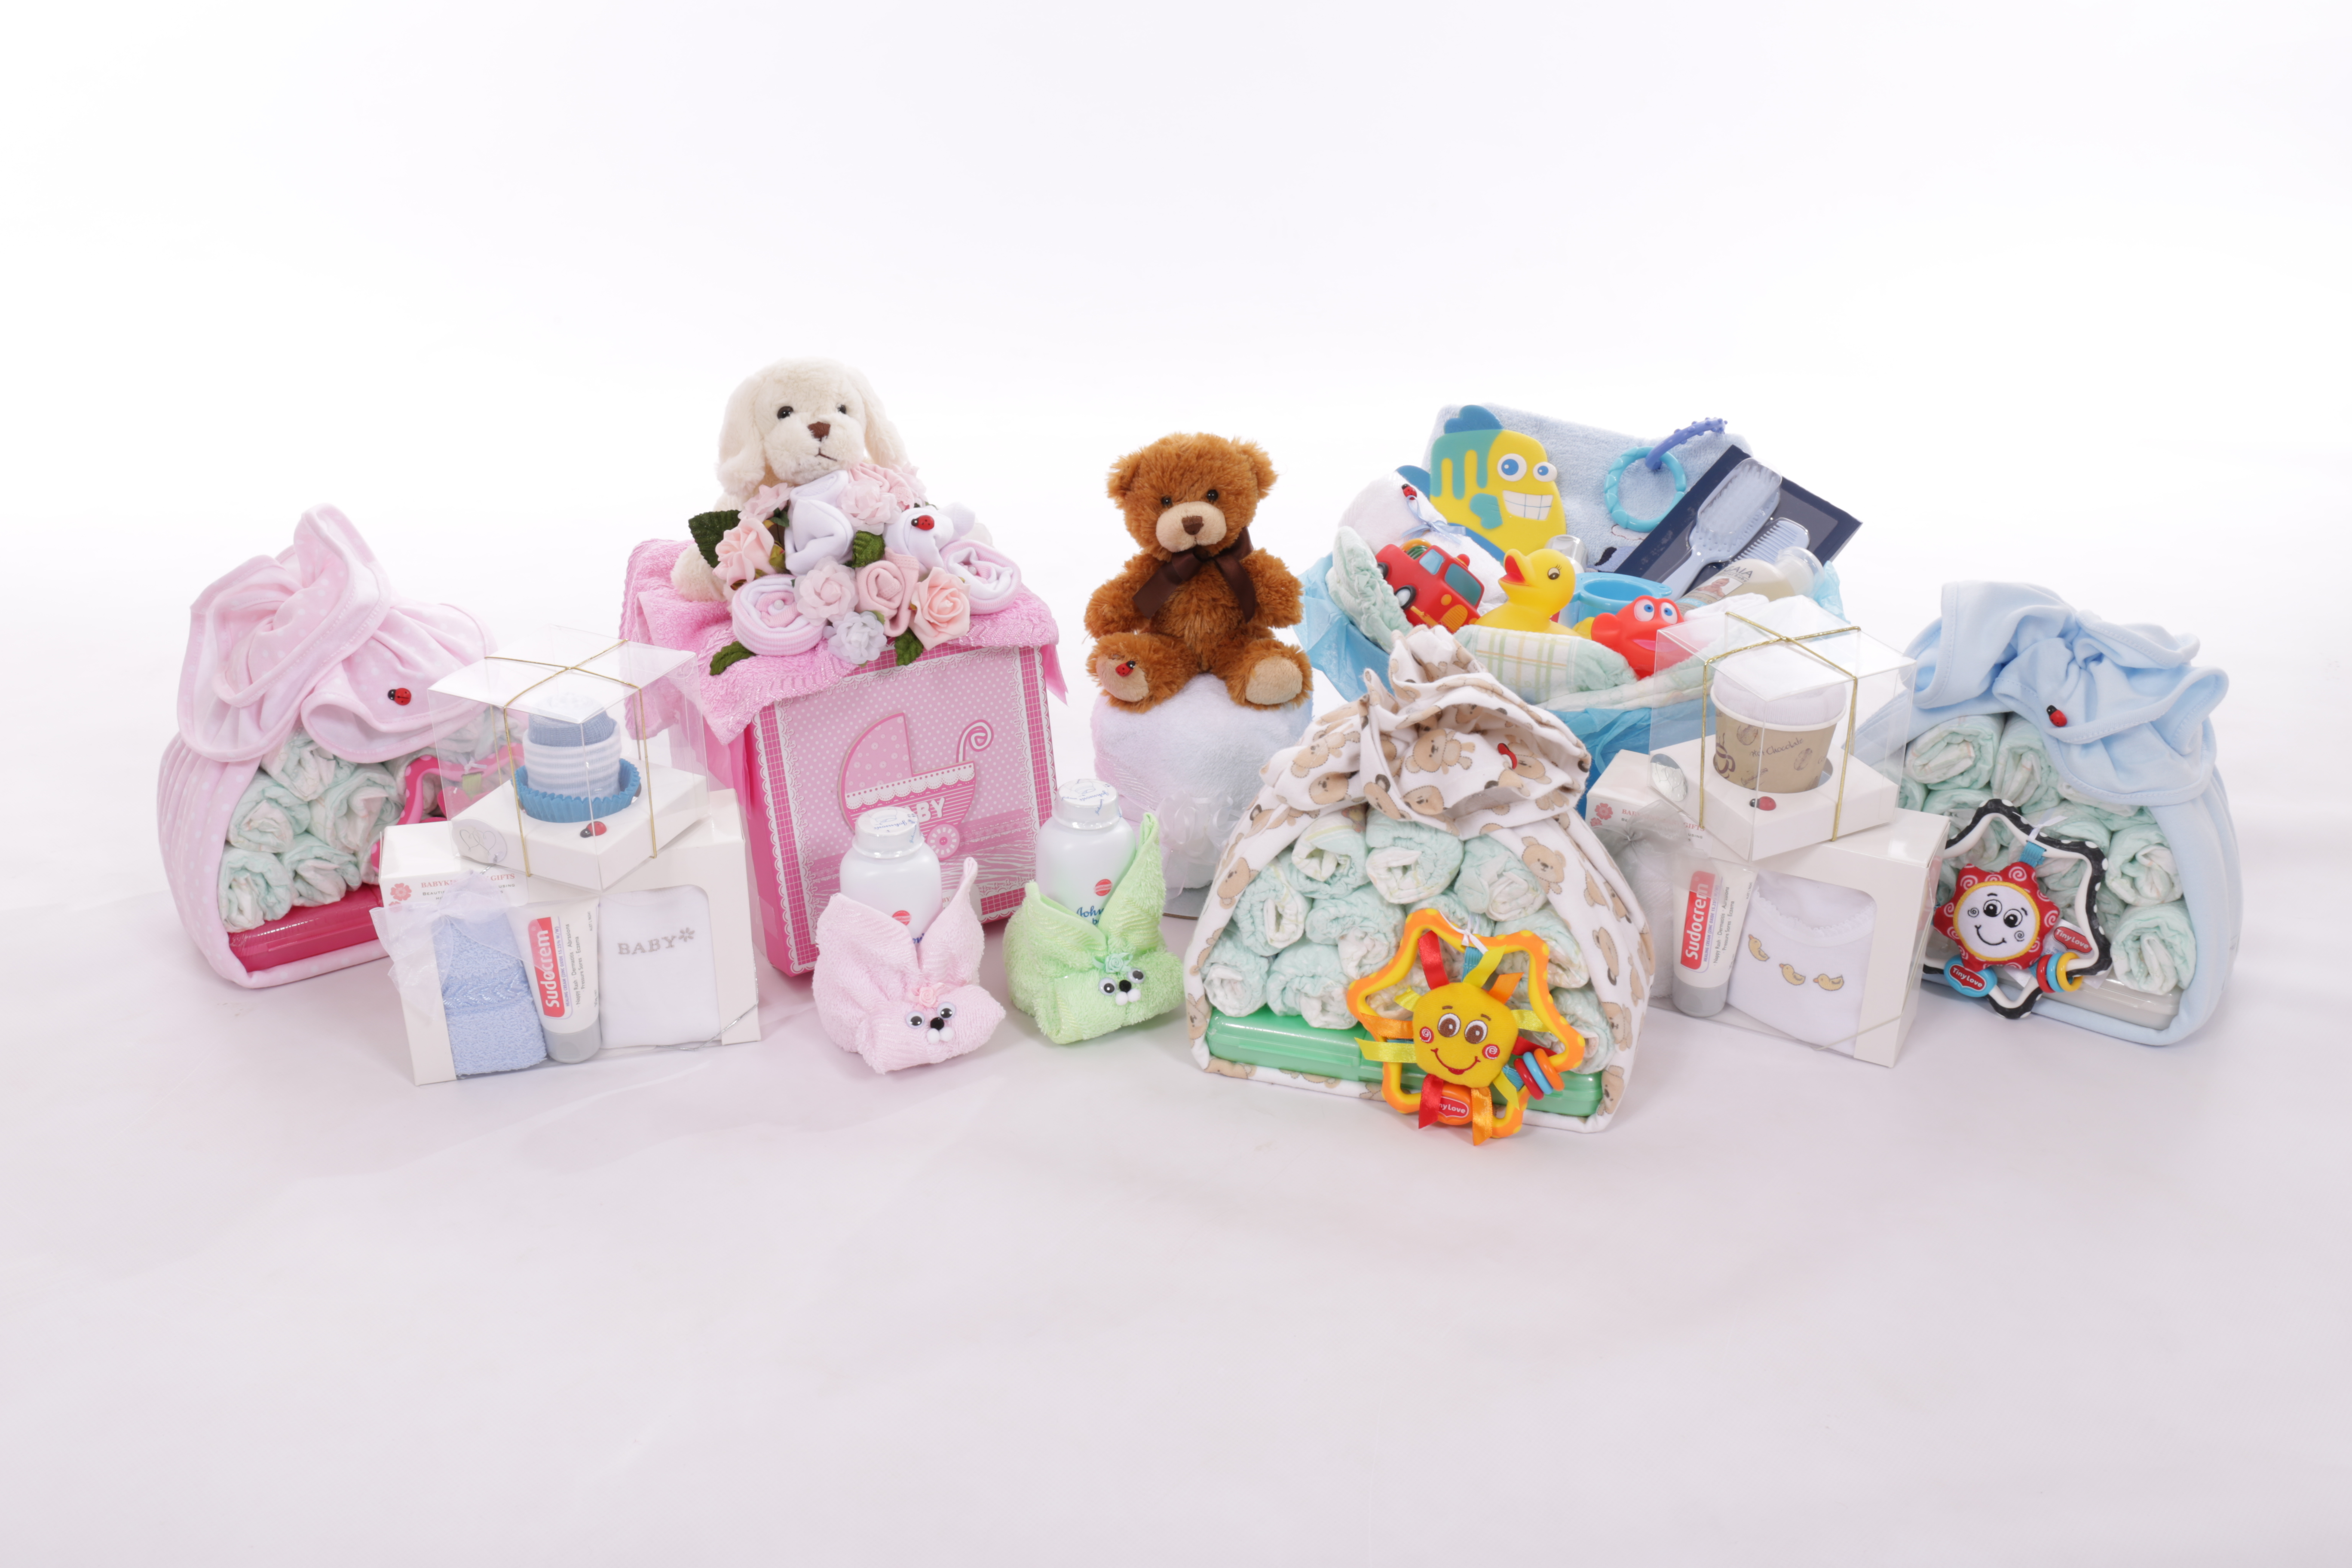 Baby Gifts Delivered Melbourne Australia : Nappy cakes melbourne delivered baby hampers